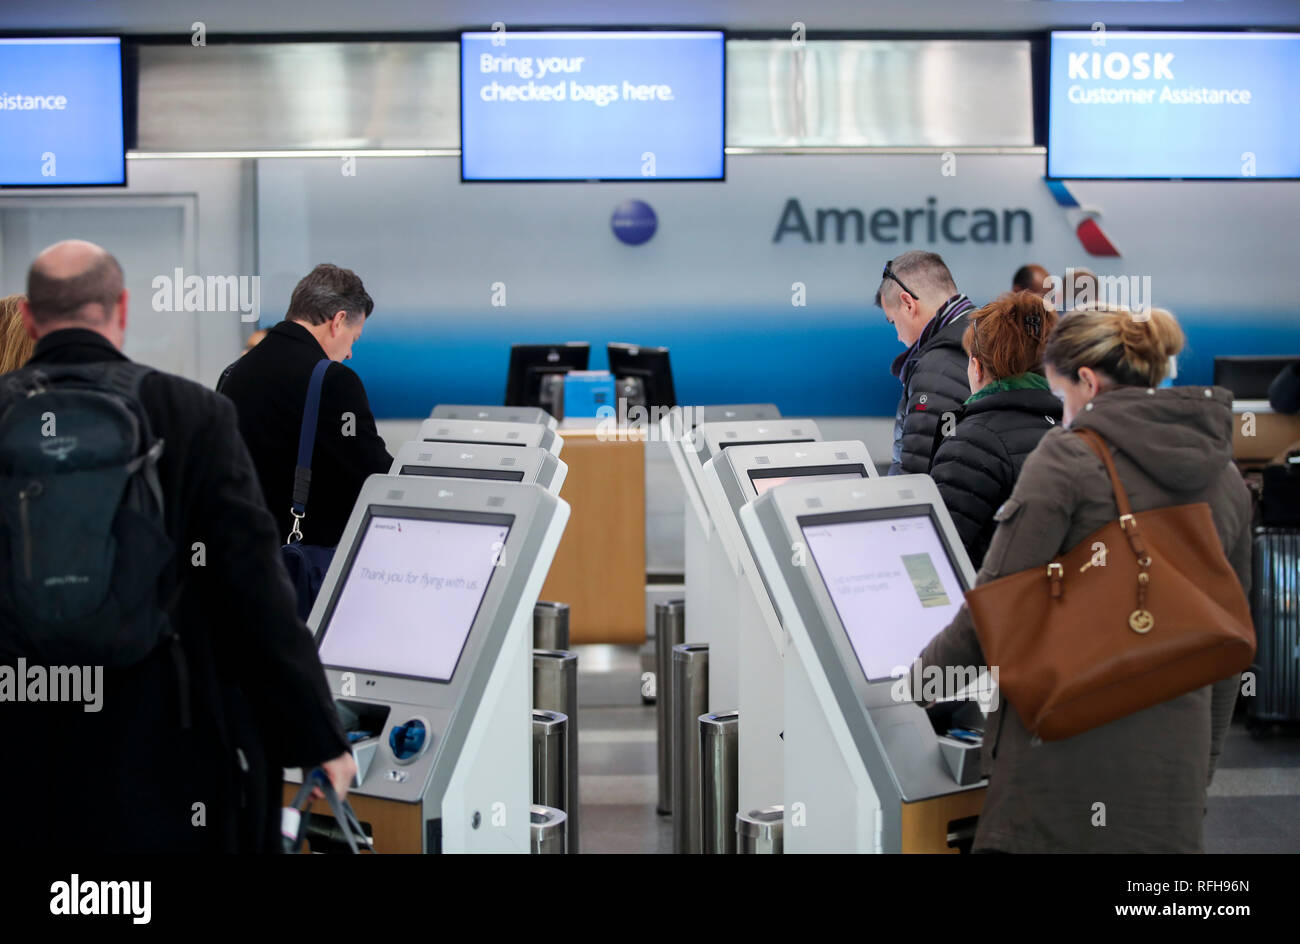 New York, USA. 25th Jan, 2019. Passengers use self-service kiosks to check in at the LaGuardia Airport in New York, the United States, on Jan. 25, 2019. The U.S. Federal Aviation Administration on Friday halted flights bound for New York City's LaGuardia Airport, due to staff shortage caused by the historic government shutdown. Credit: Wang Ying/Xinhua/Alamy Live News - Stock Image